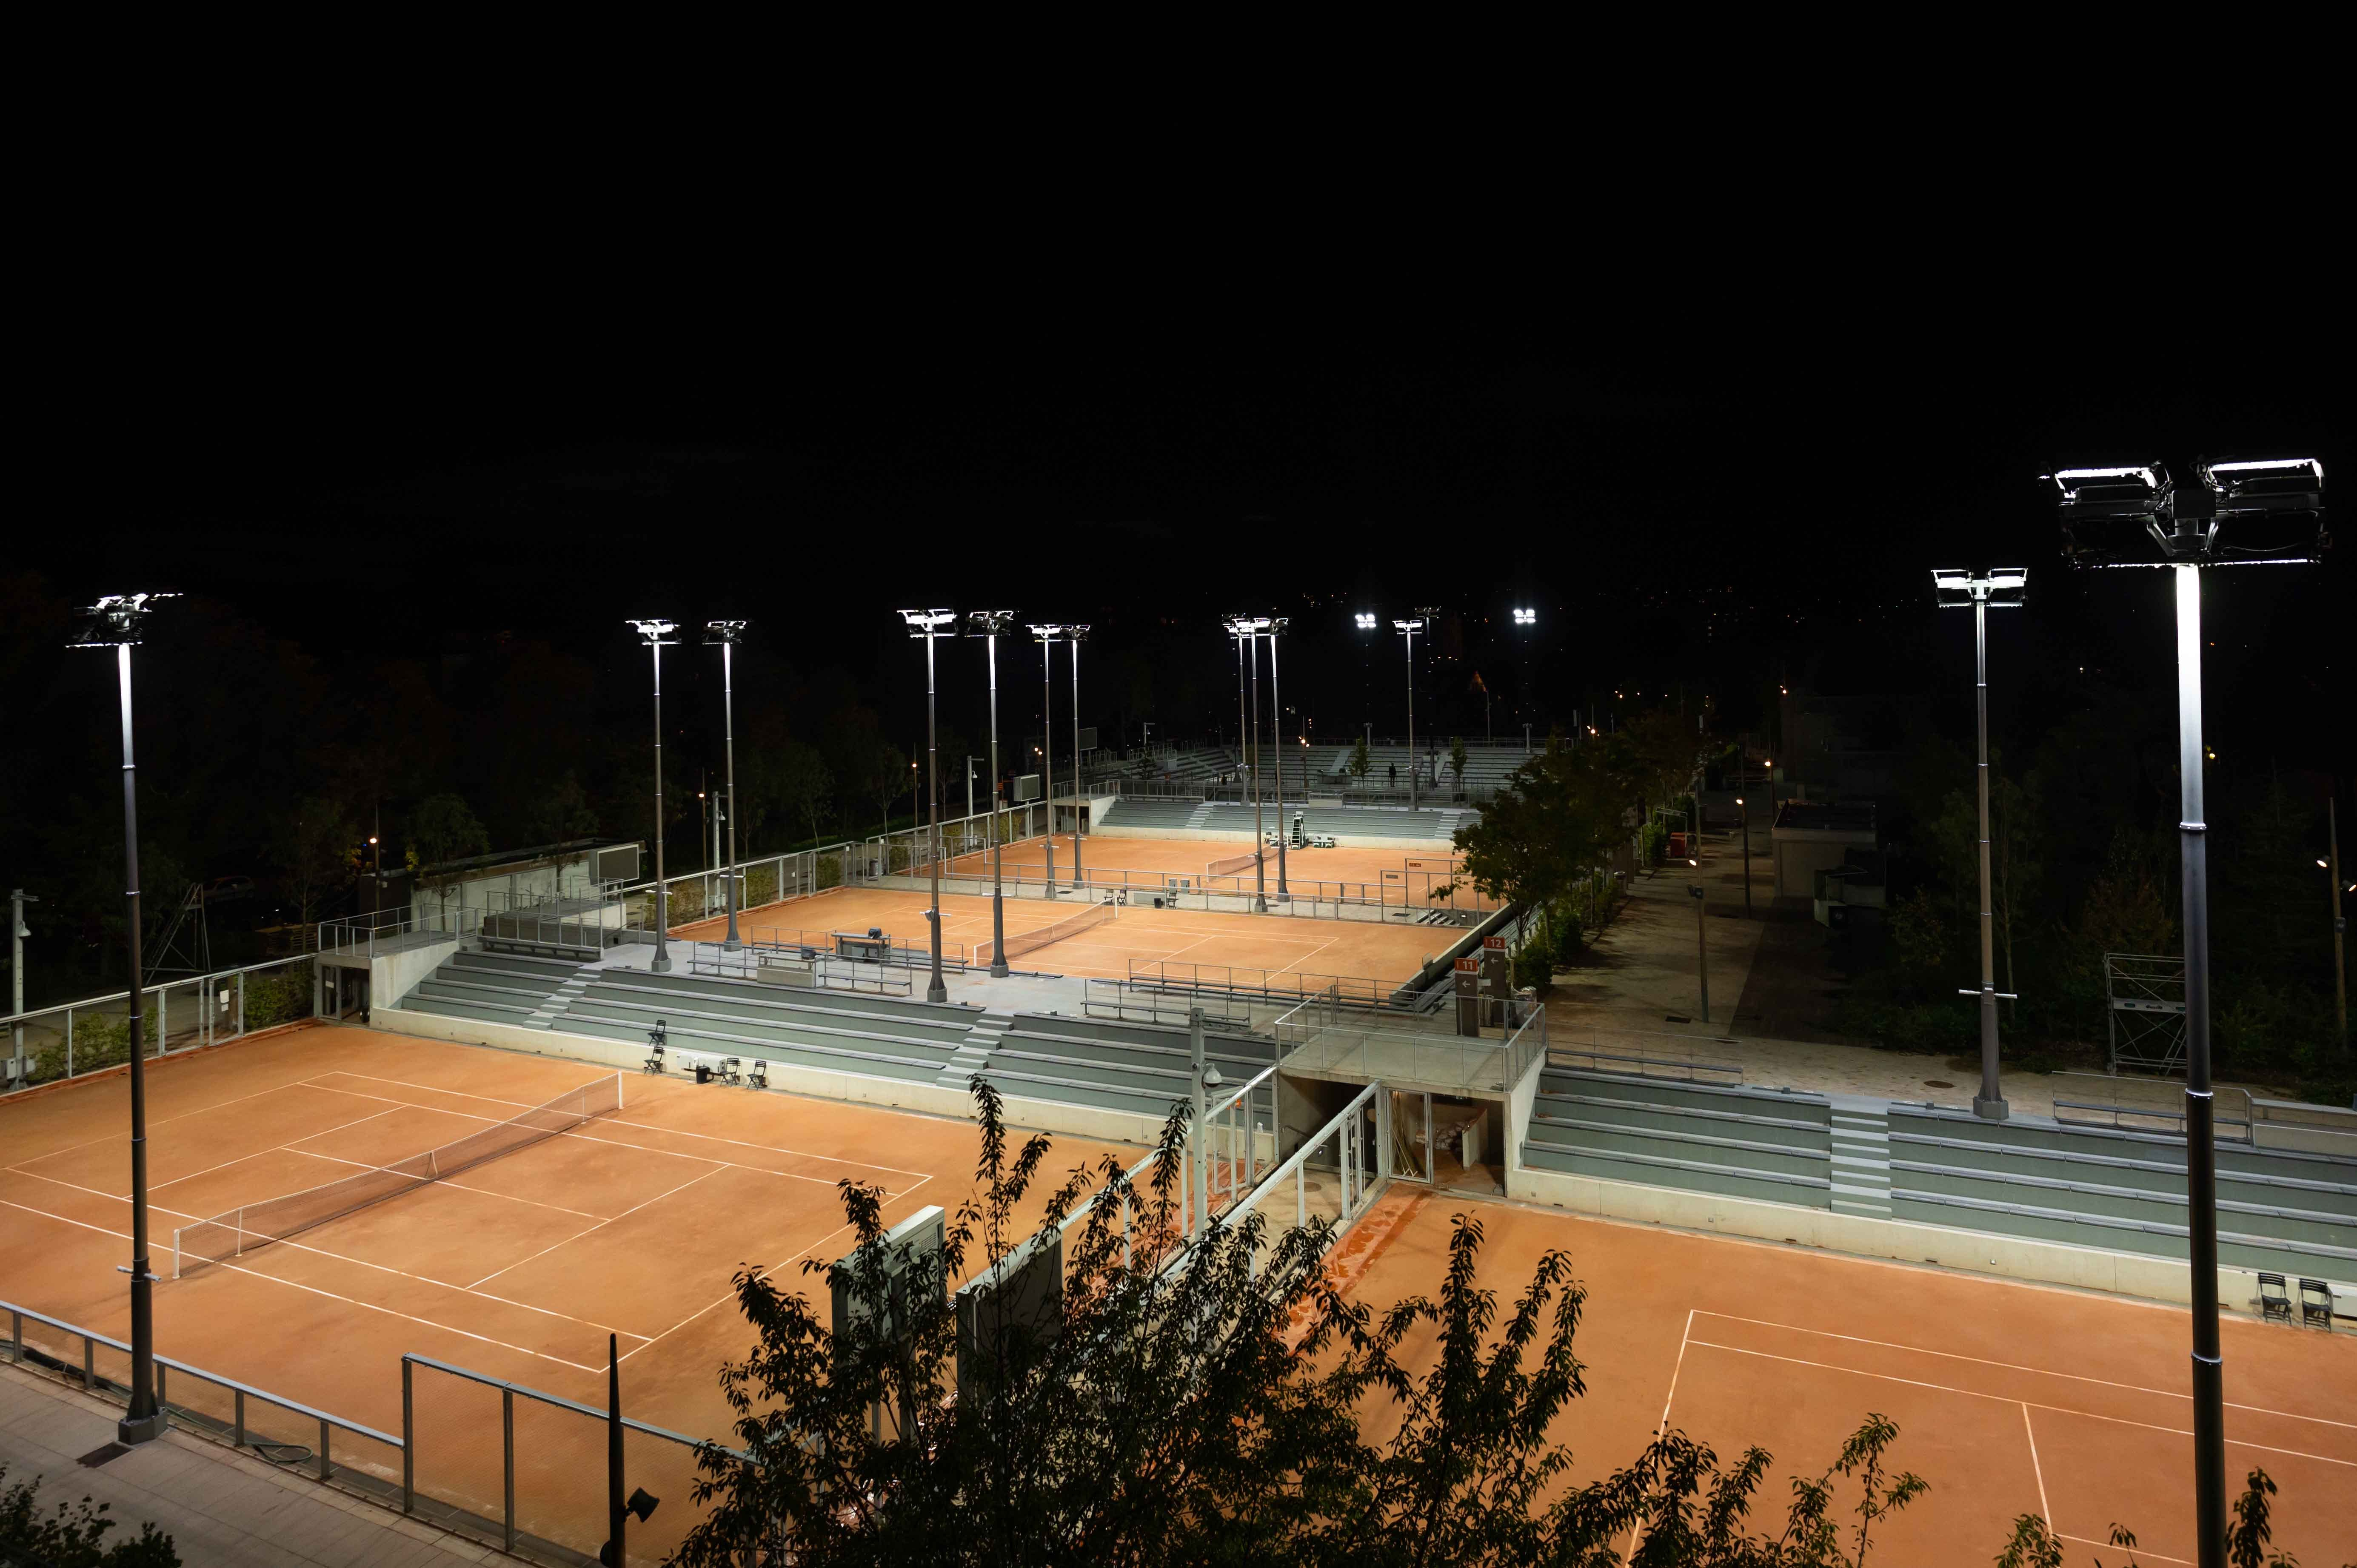 The Fonds des Princes courts at night, September 2020